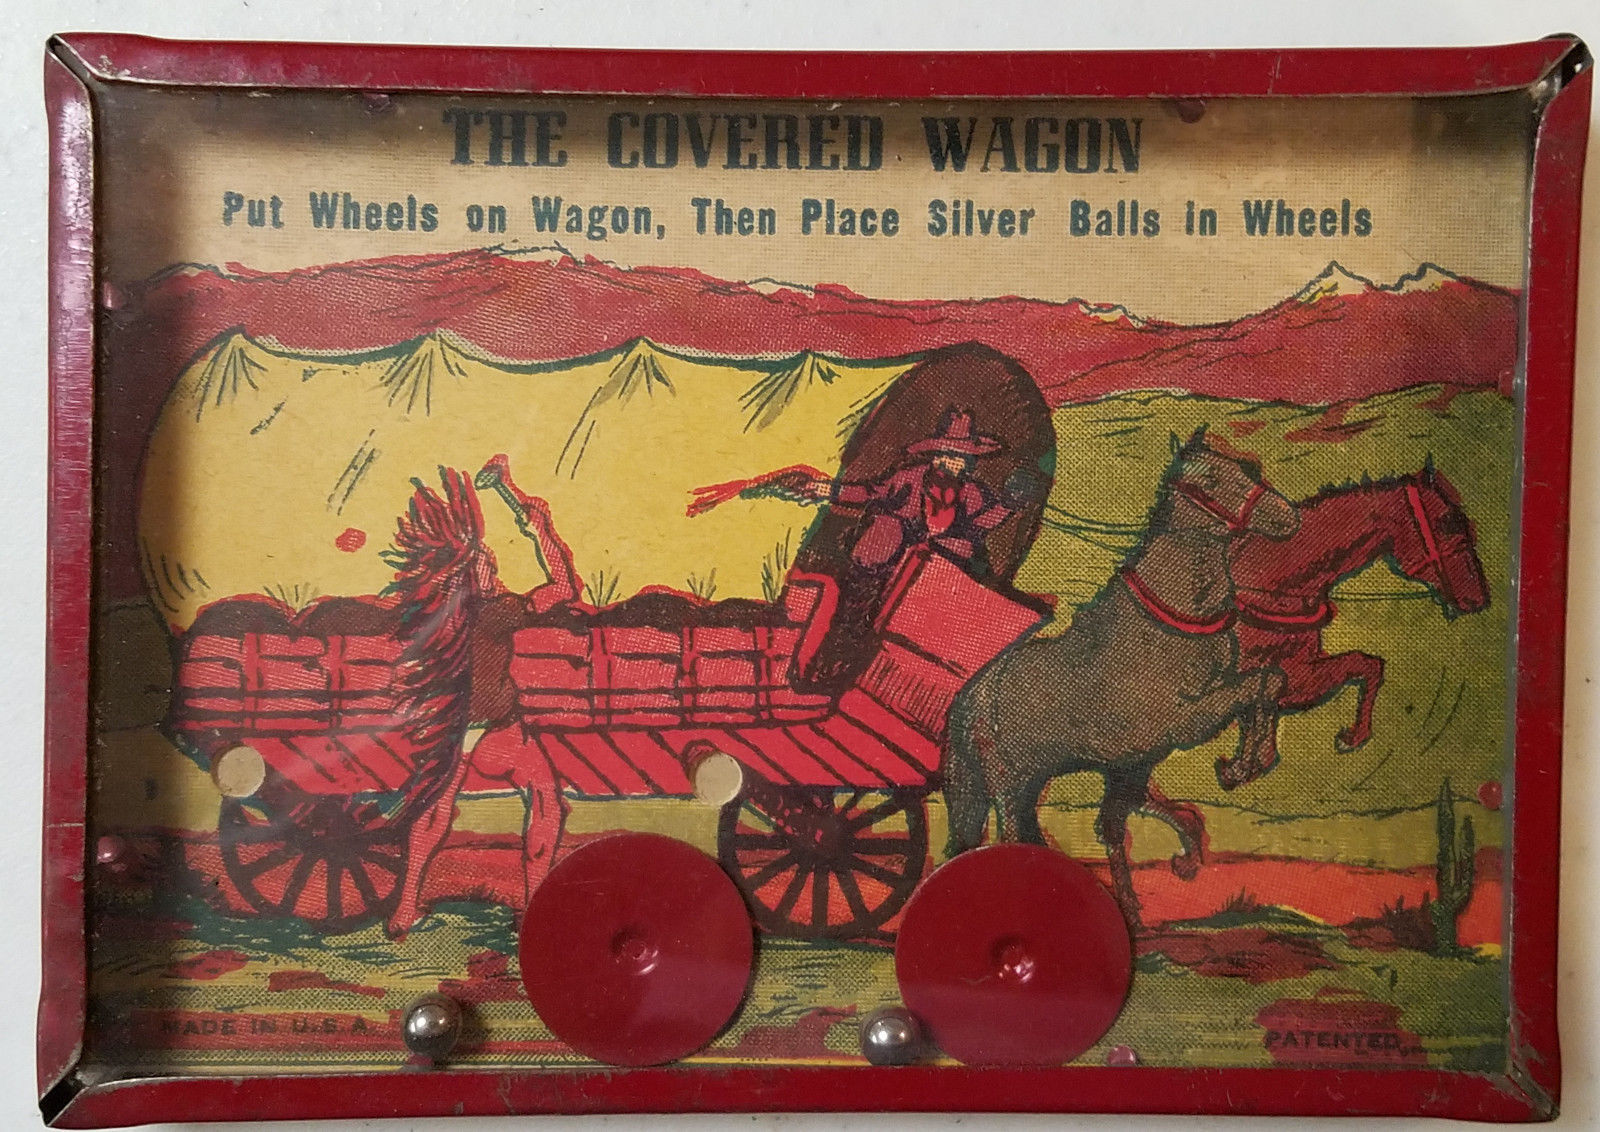 Vintage Cowboy & Indian Western Tin Toy Dexterity Puzzle The Covered Wagon